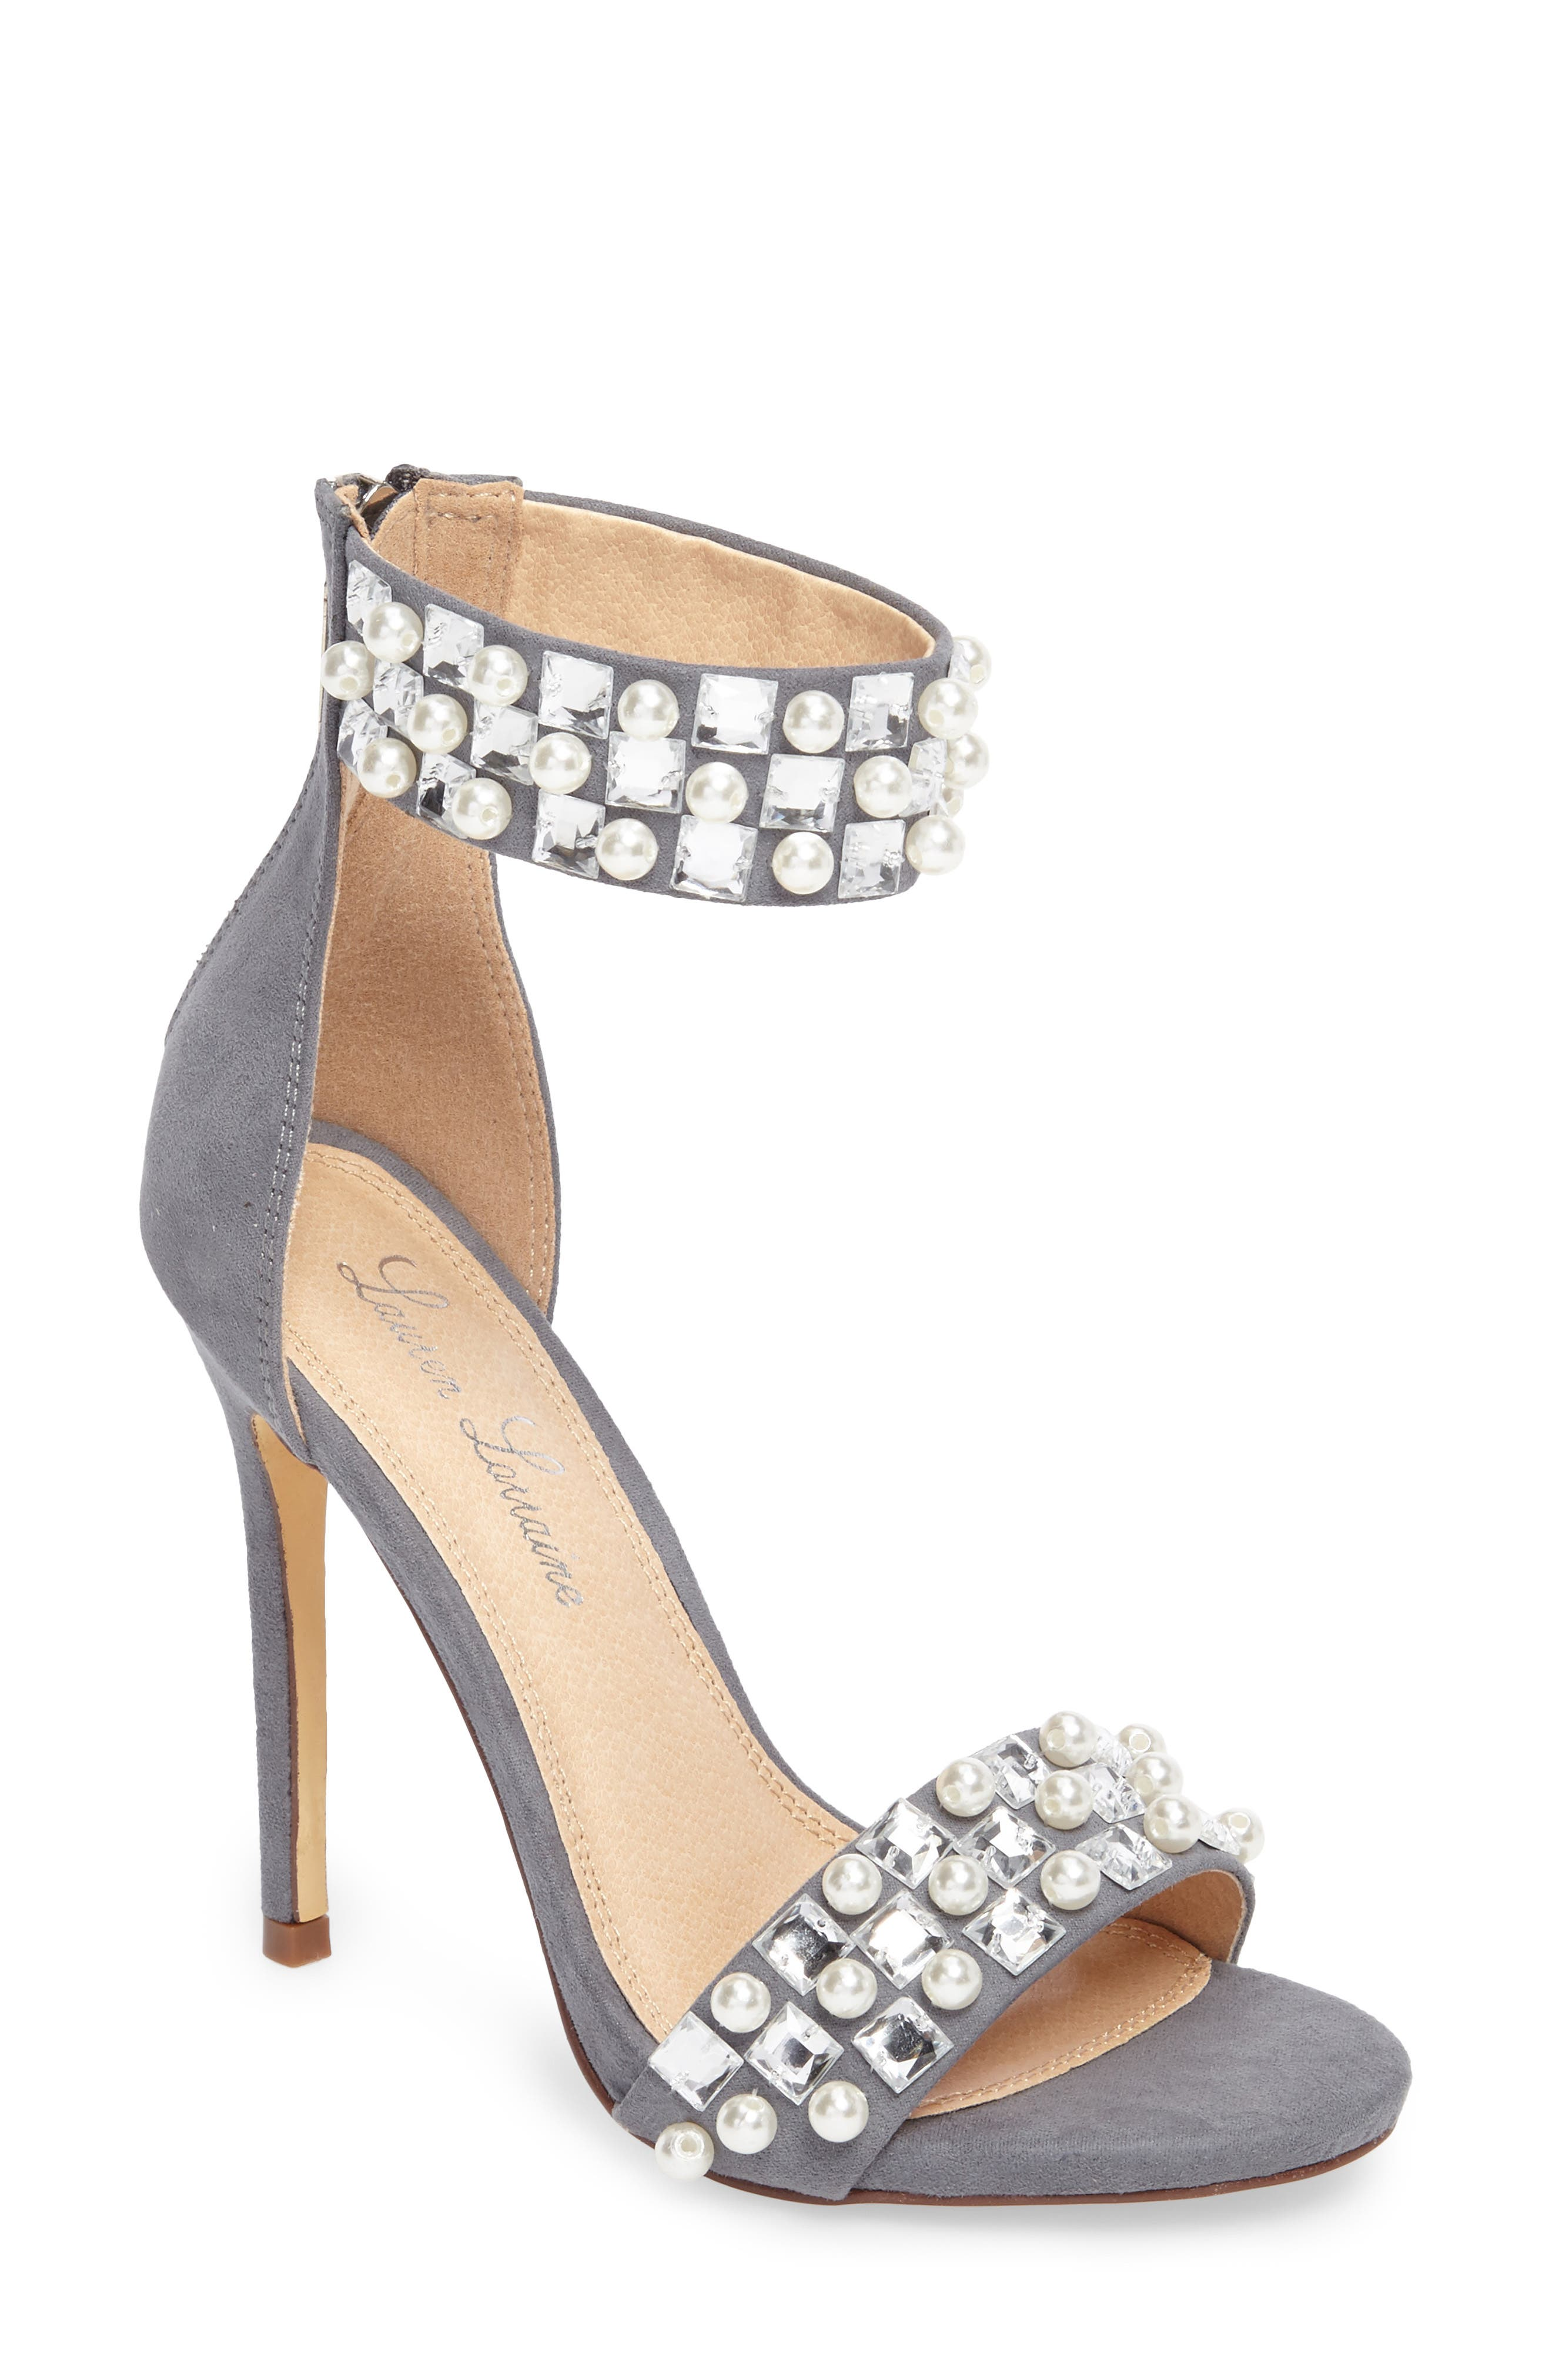 Sizzle Embellished Sandal,                             Main thumbnail 1, color,                             Grey Suede